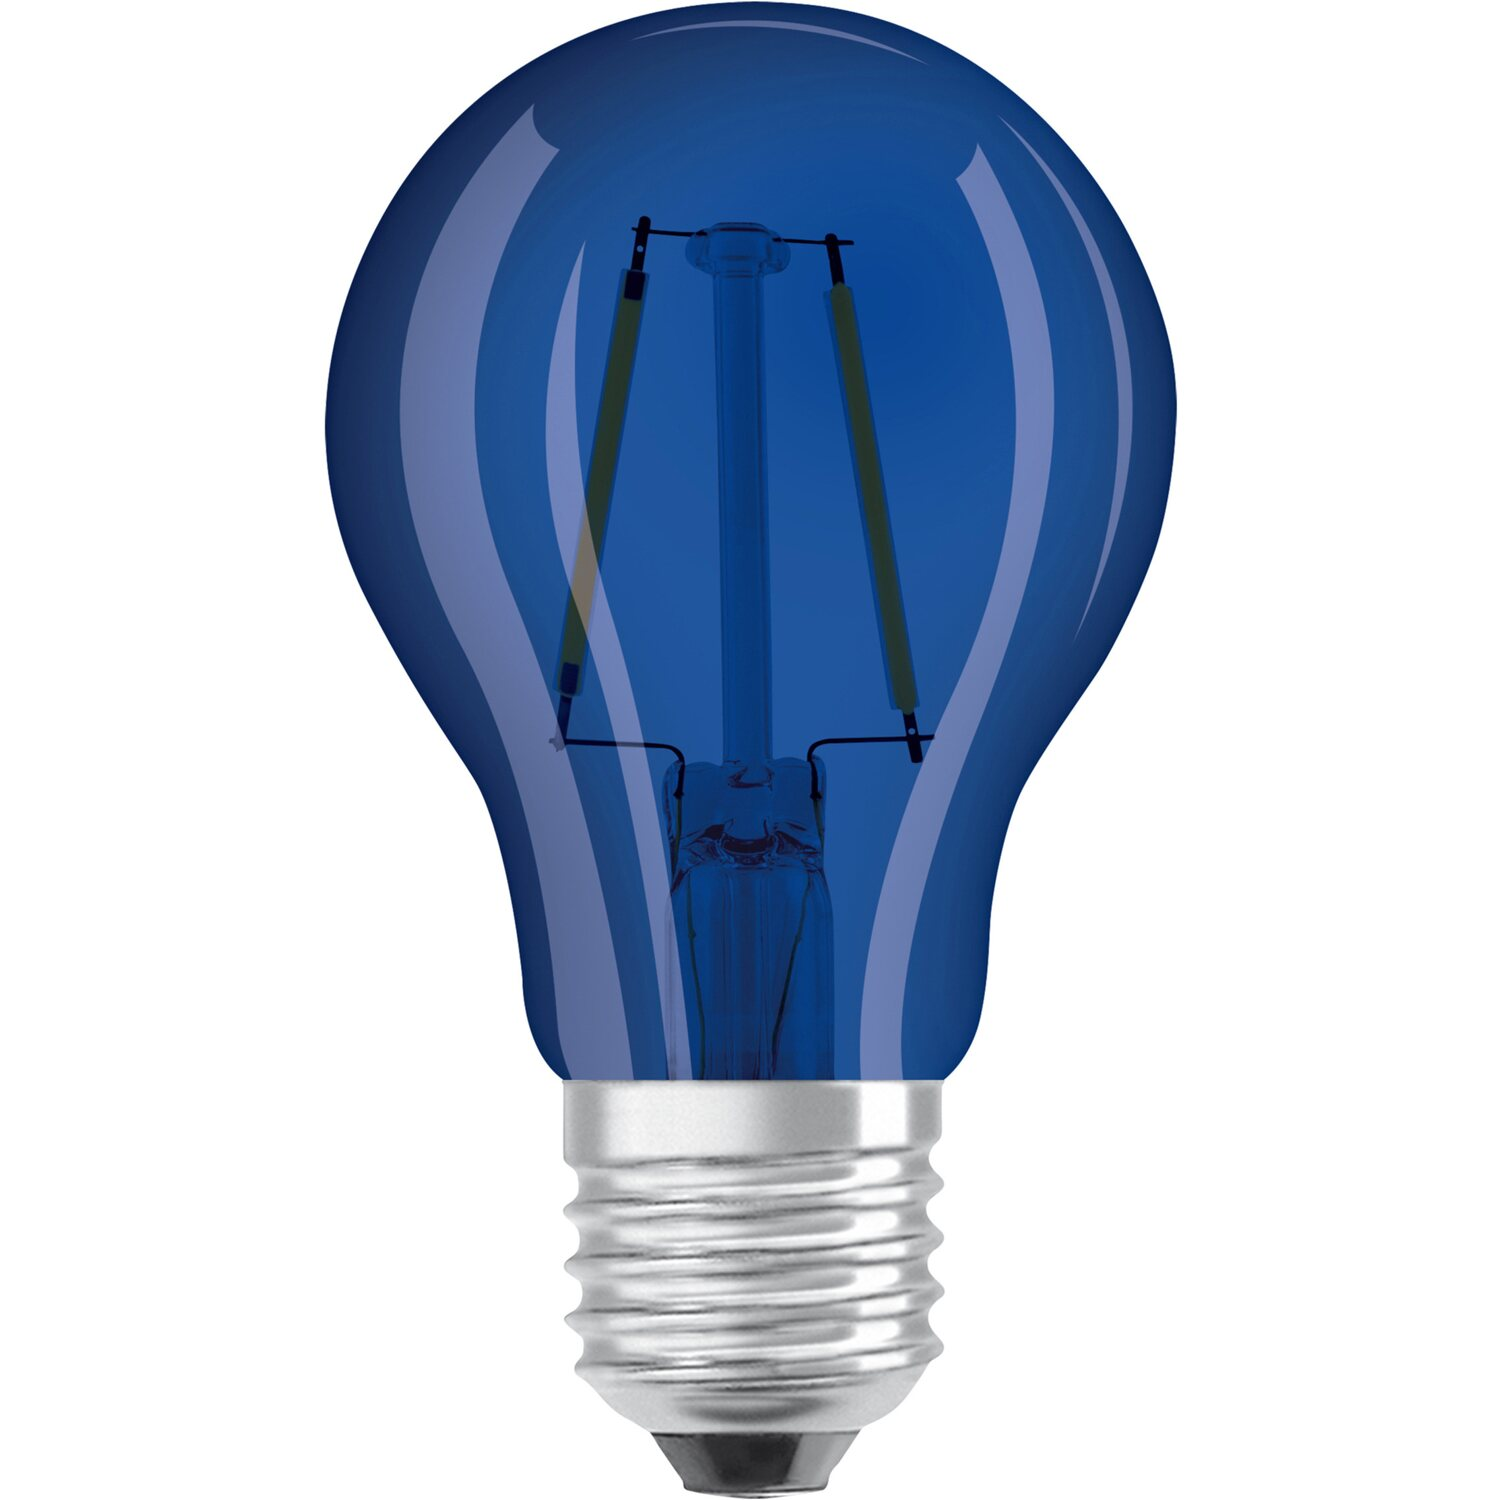 Osram lampadina led decor goccia e27 blu acquista da obi for Lampadina e27